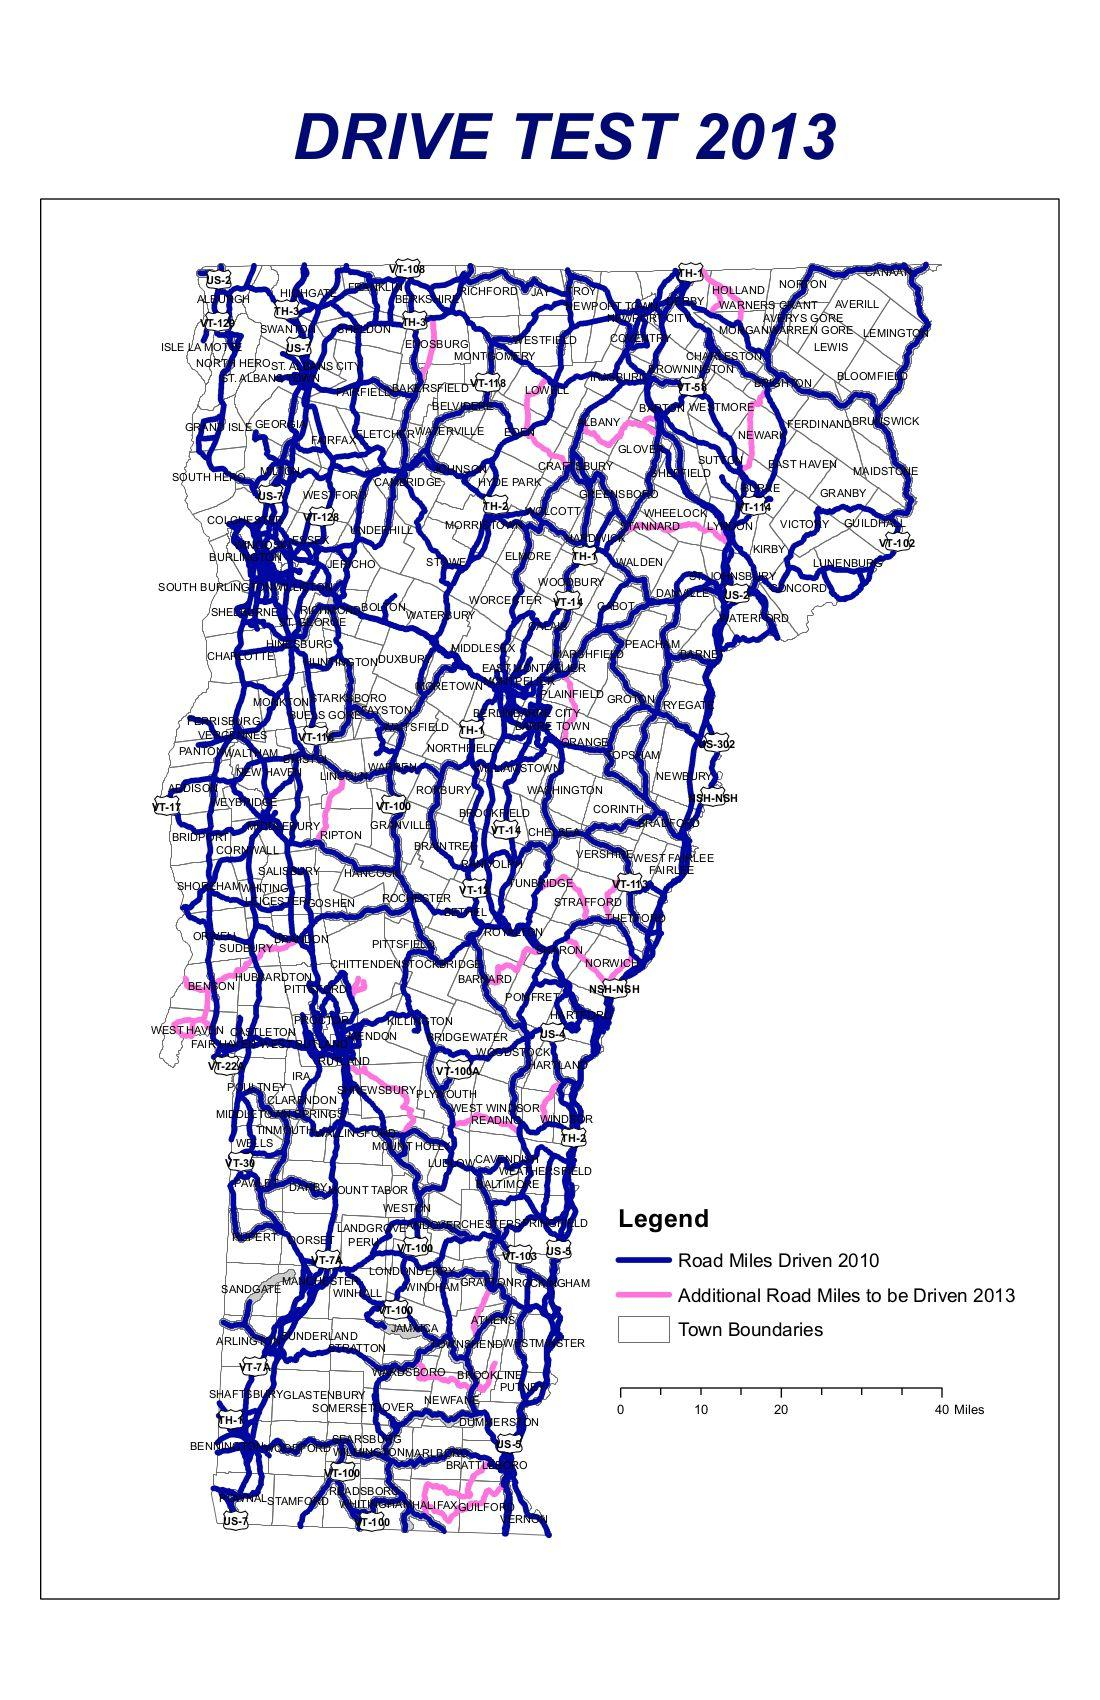 Mapping Project Charts Cell Phone Coverage In Vermont Vermont - Cell phone carrier coverage map